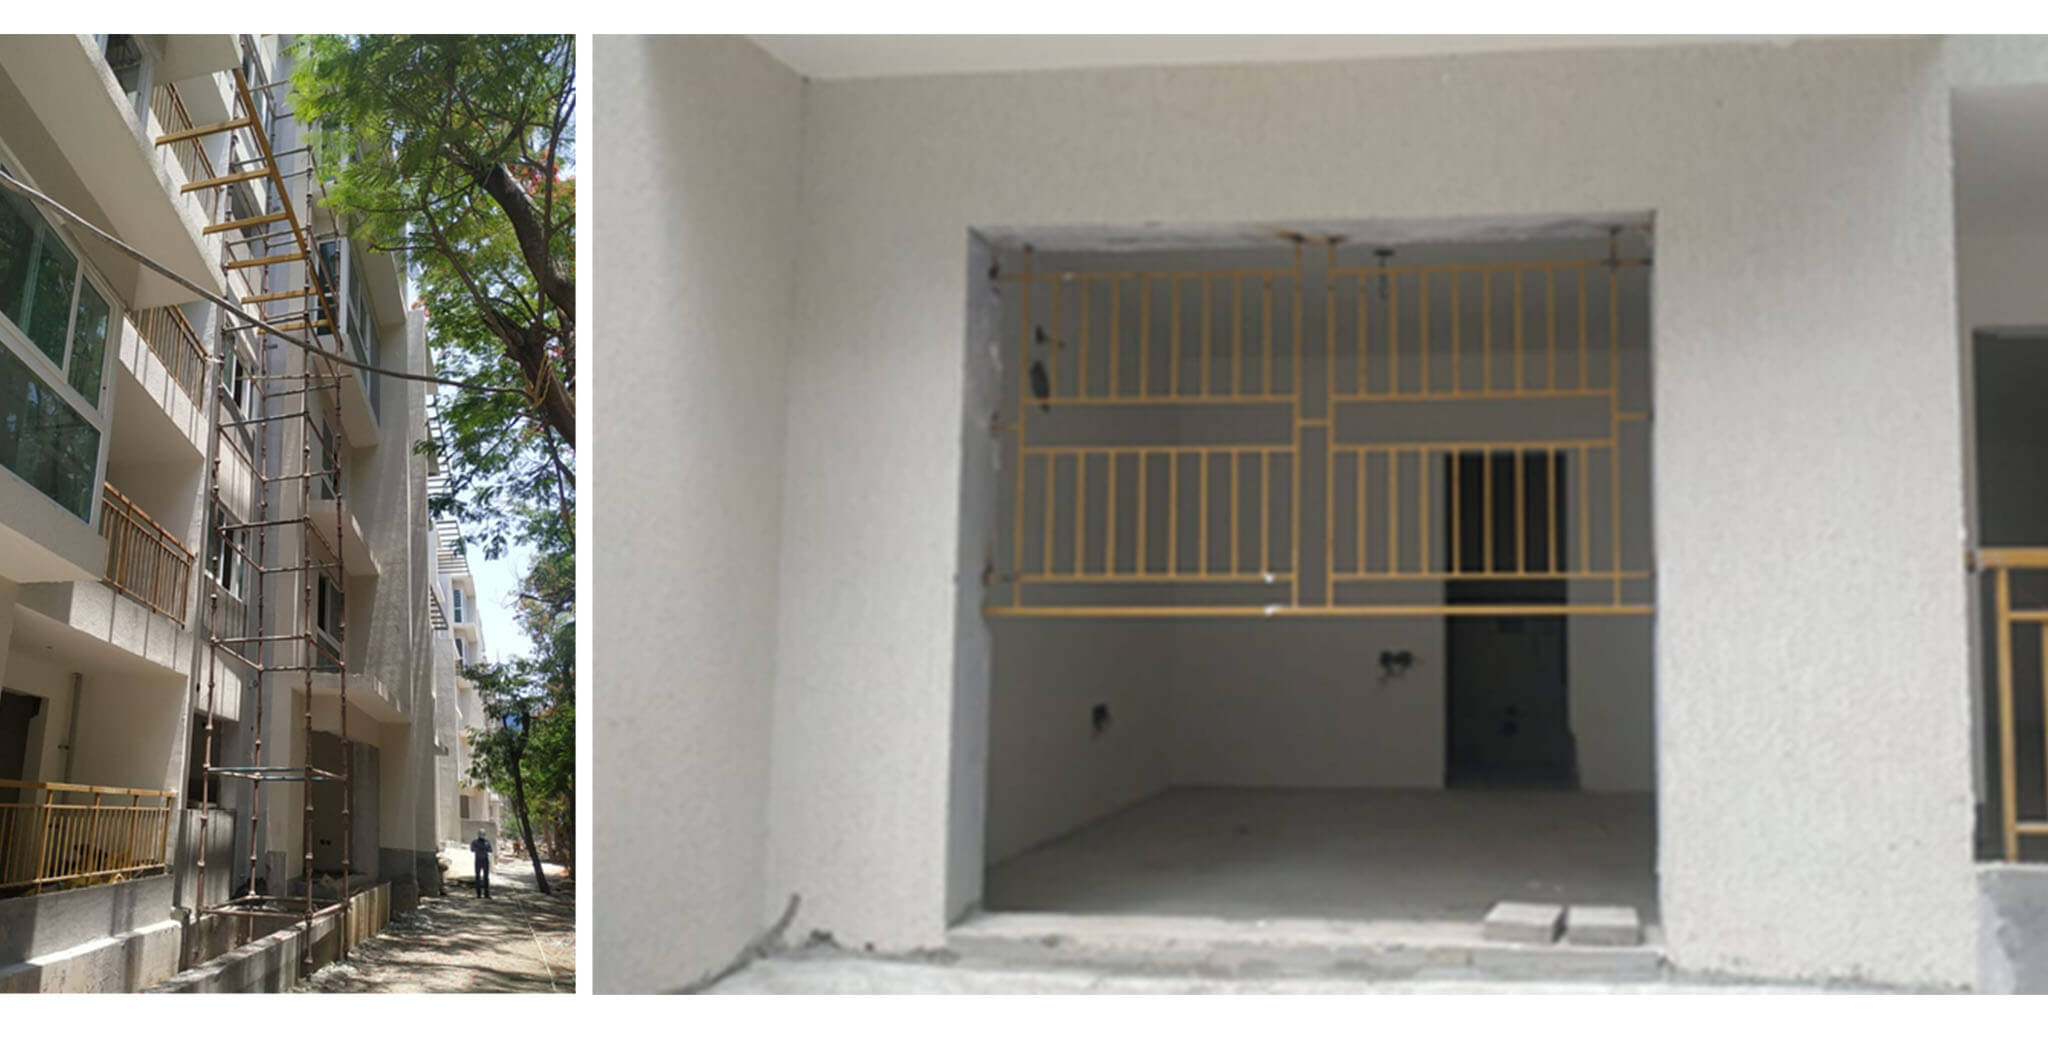 May 2021 - K Block: 1st floor wall painting & grouting work, Kitchen utility PHE external shaft piping works commenced; Ground floor lobby granite cladding, Staircase and lobby area wall putty, and Window grill installation work-in-progress; Main door installation works at 3rd floor.